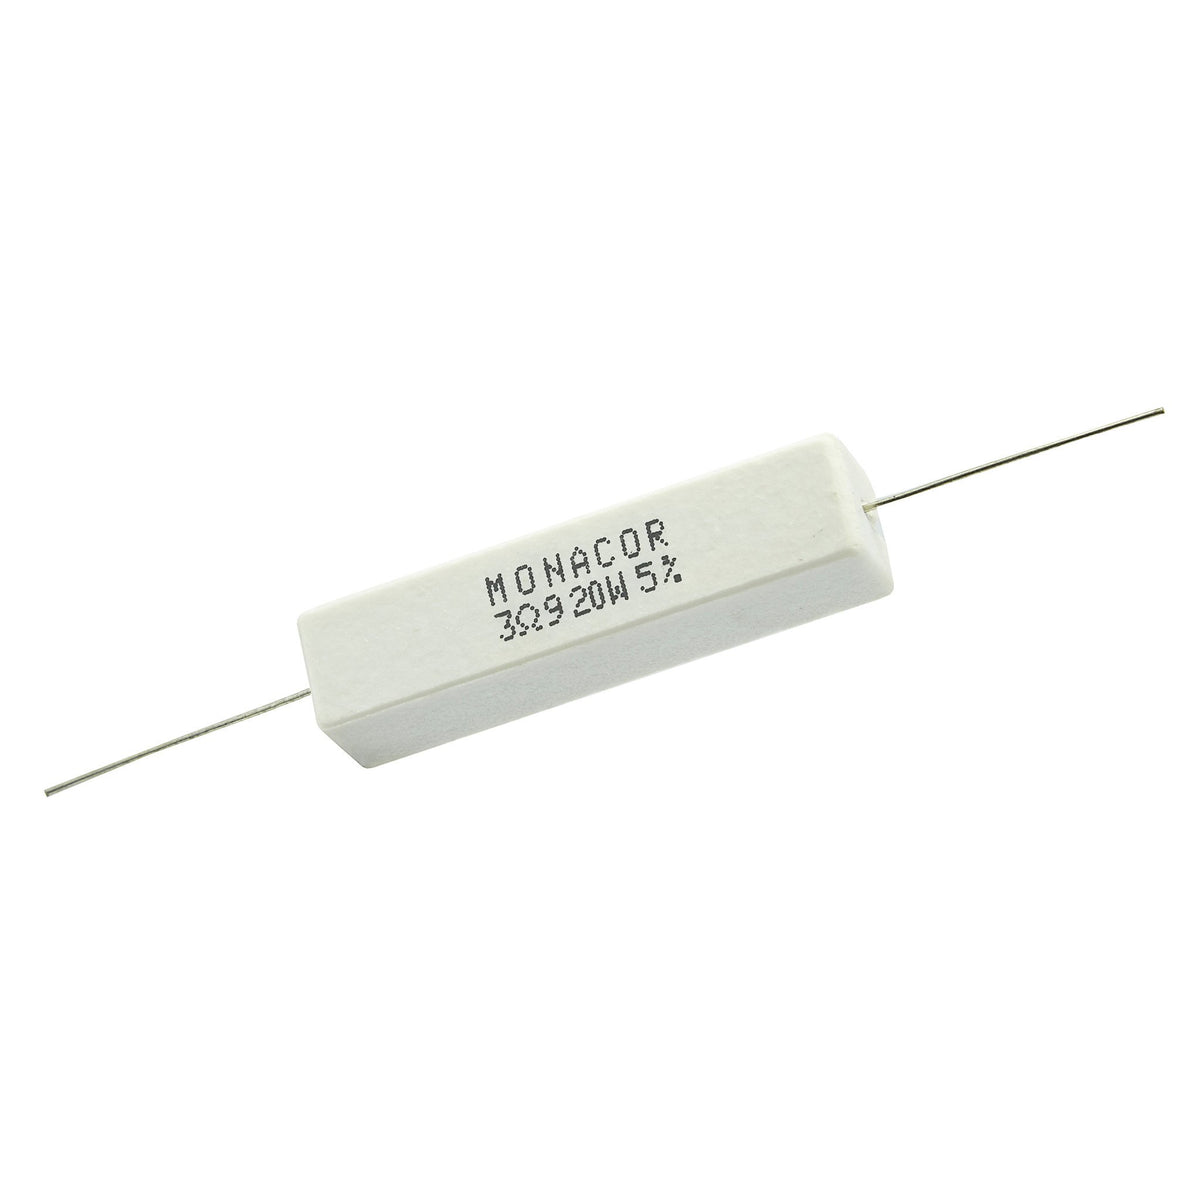 3.9 Ohm 20 Watt 5% Ceramic Wirewound Resistor - Willys-Hifi Ltd